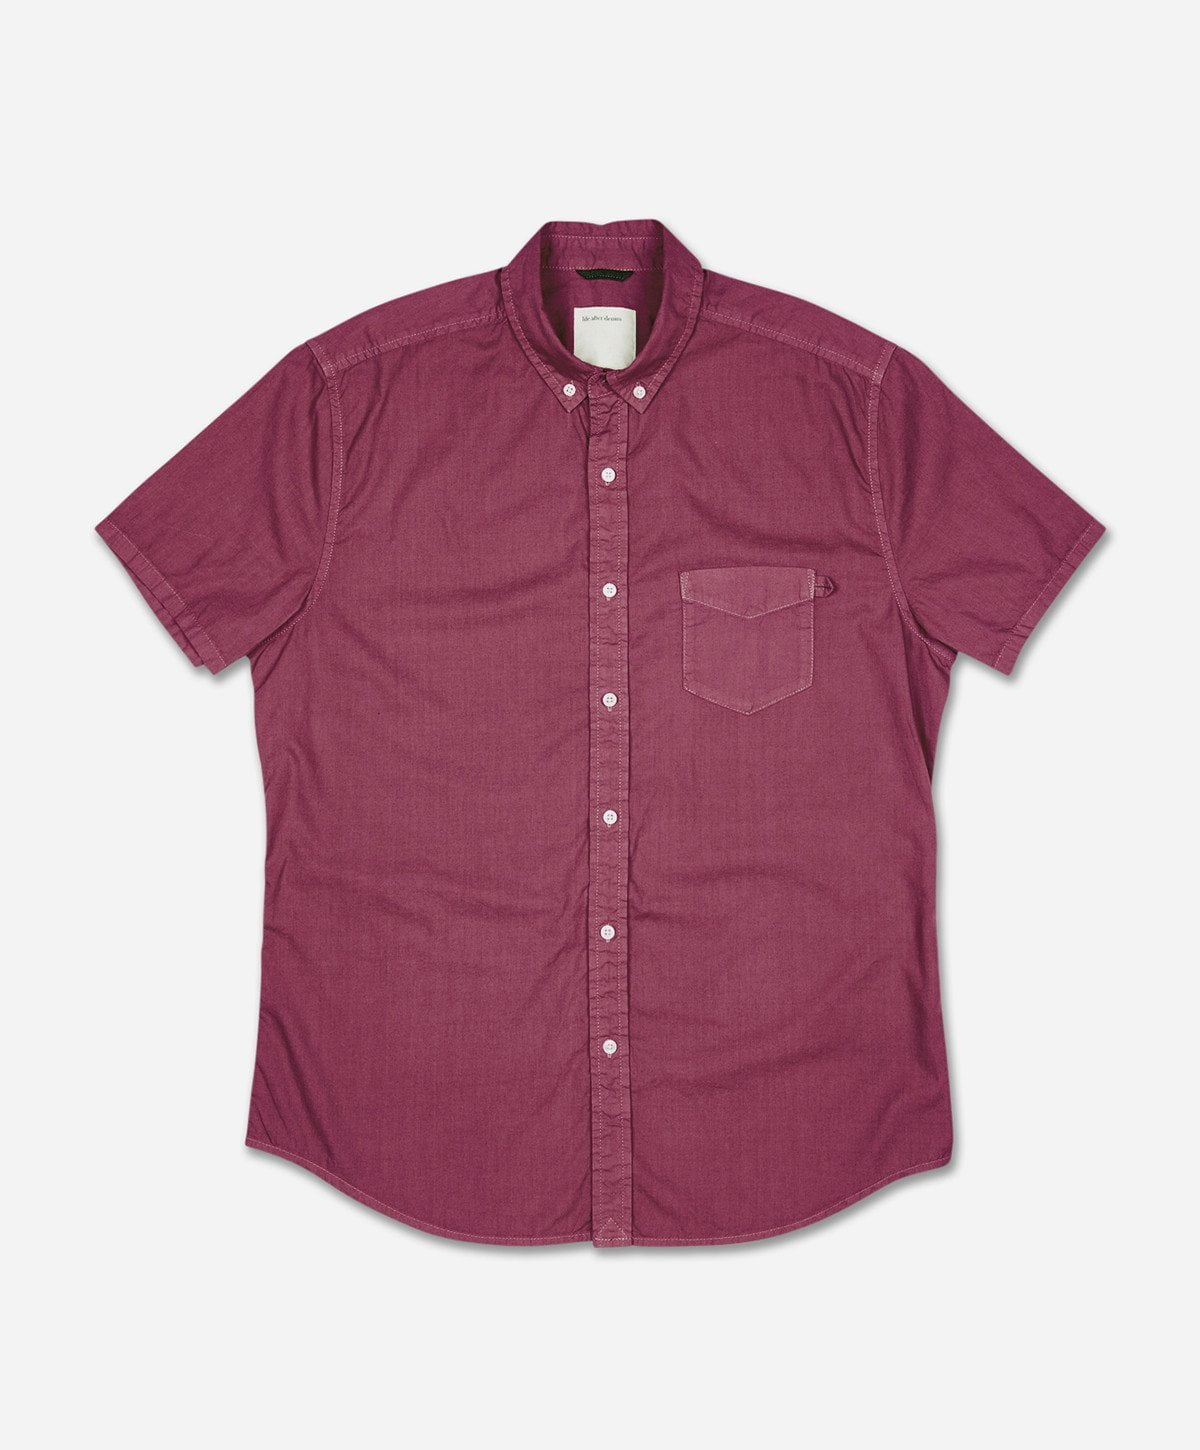 Silverlake Short Sleeve Shirt - Wino